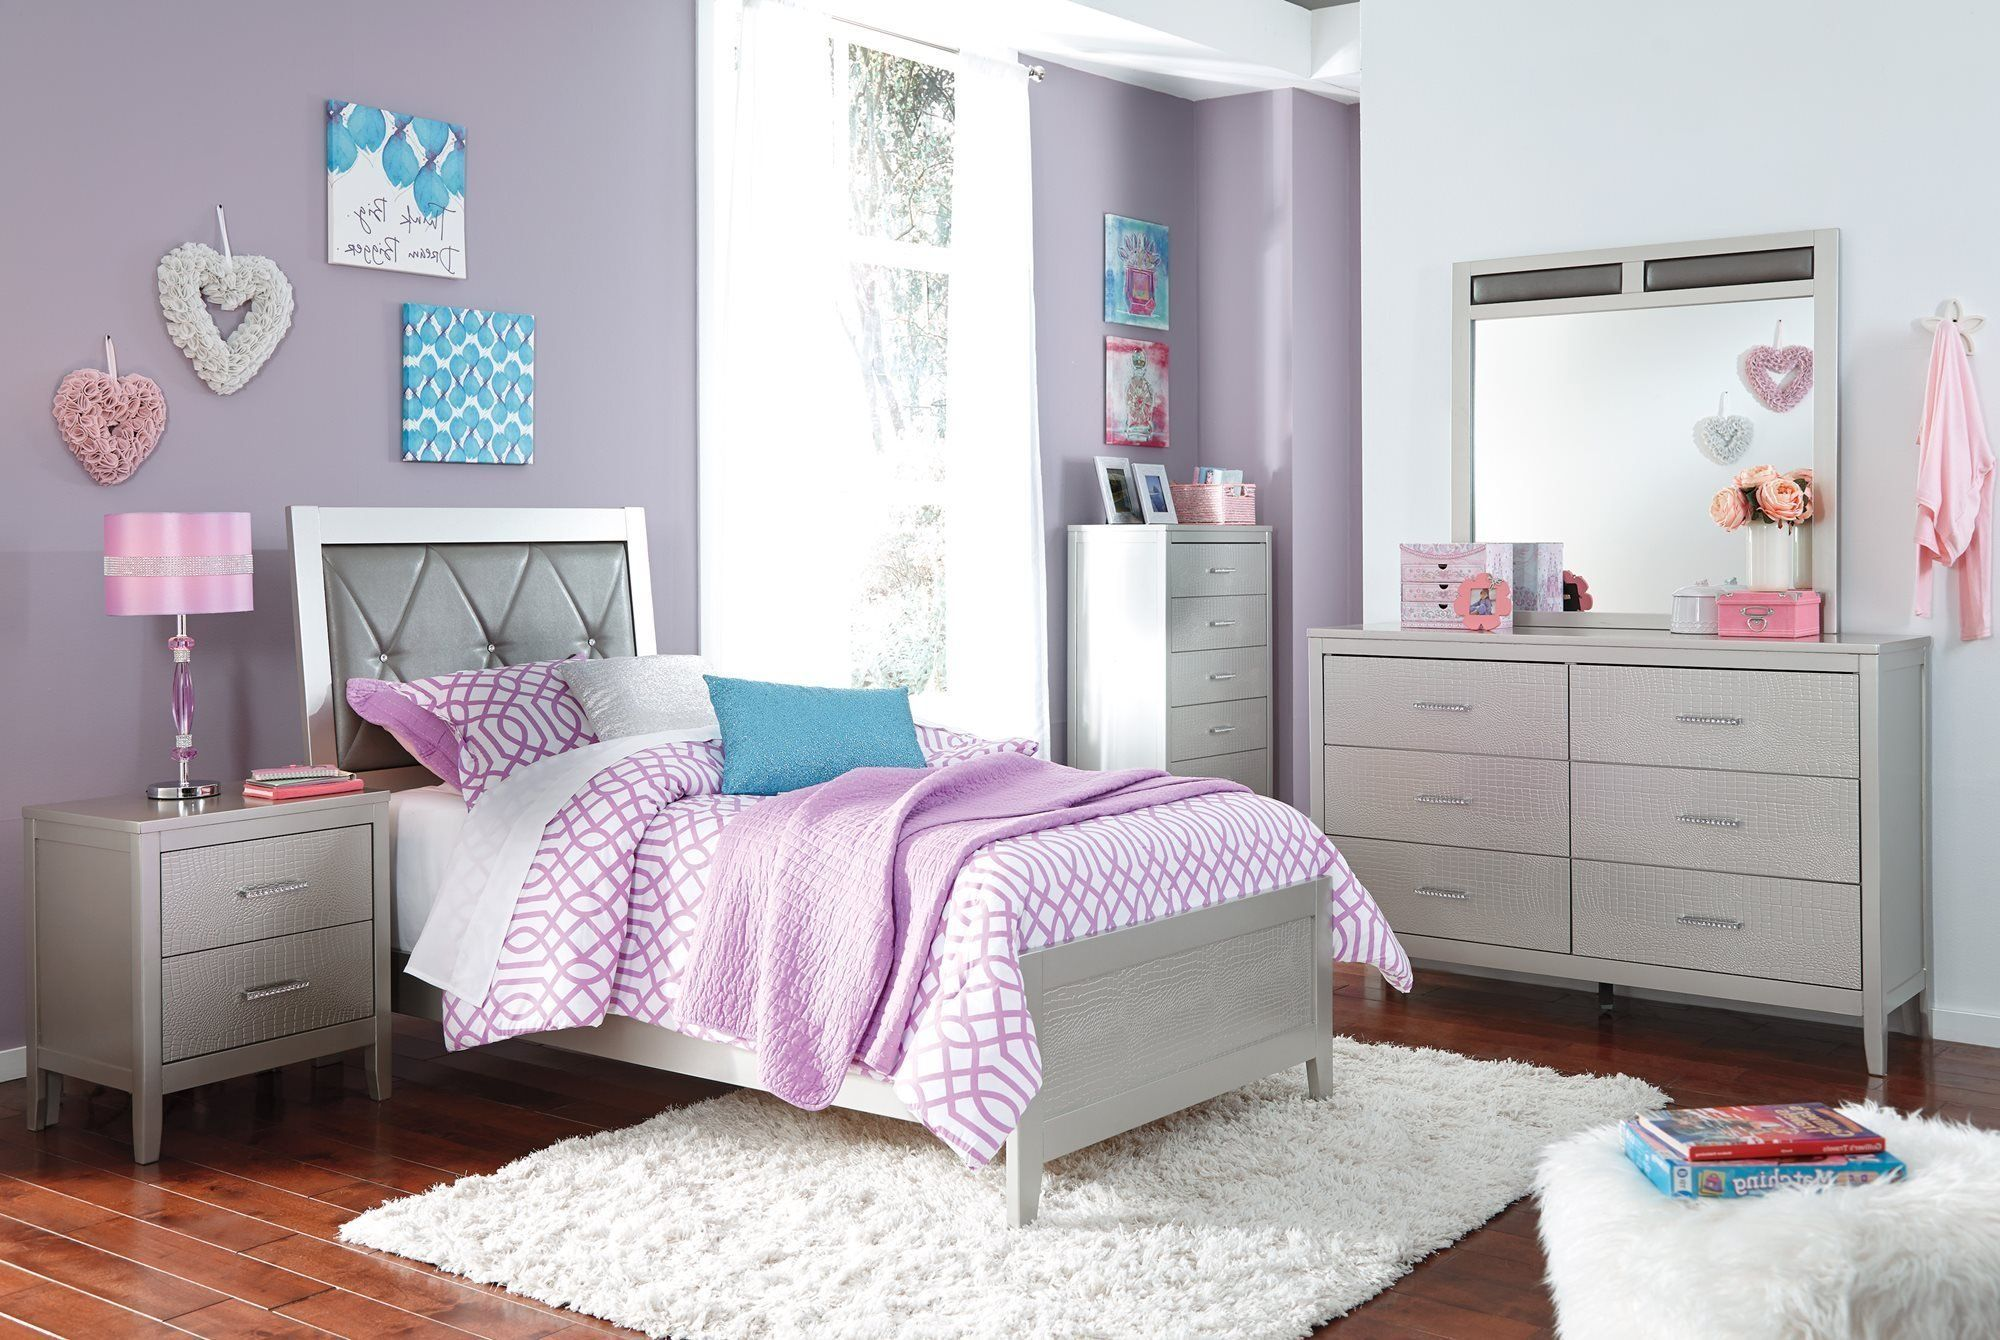 Colorworks 6Piece Full Bedroom Set with Twin Trundle